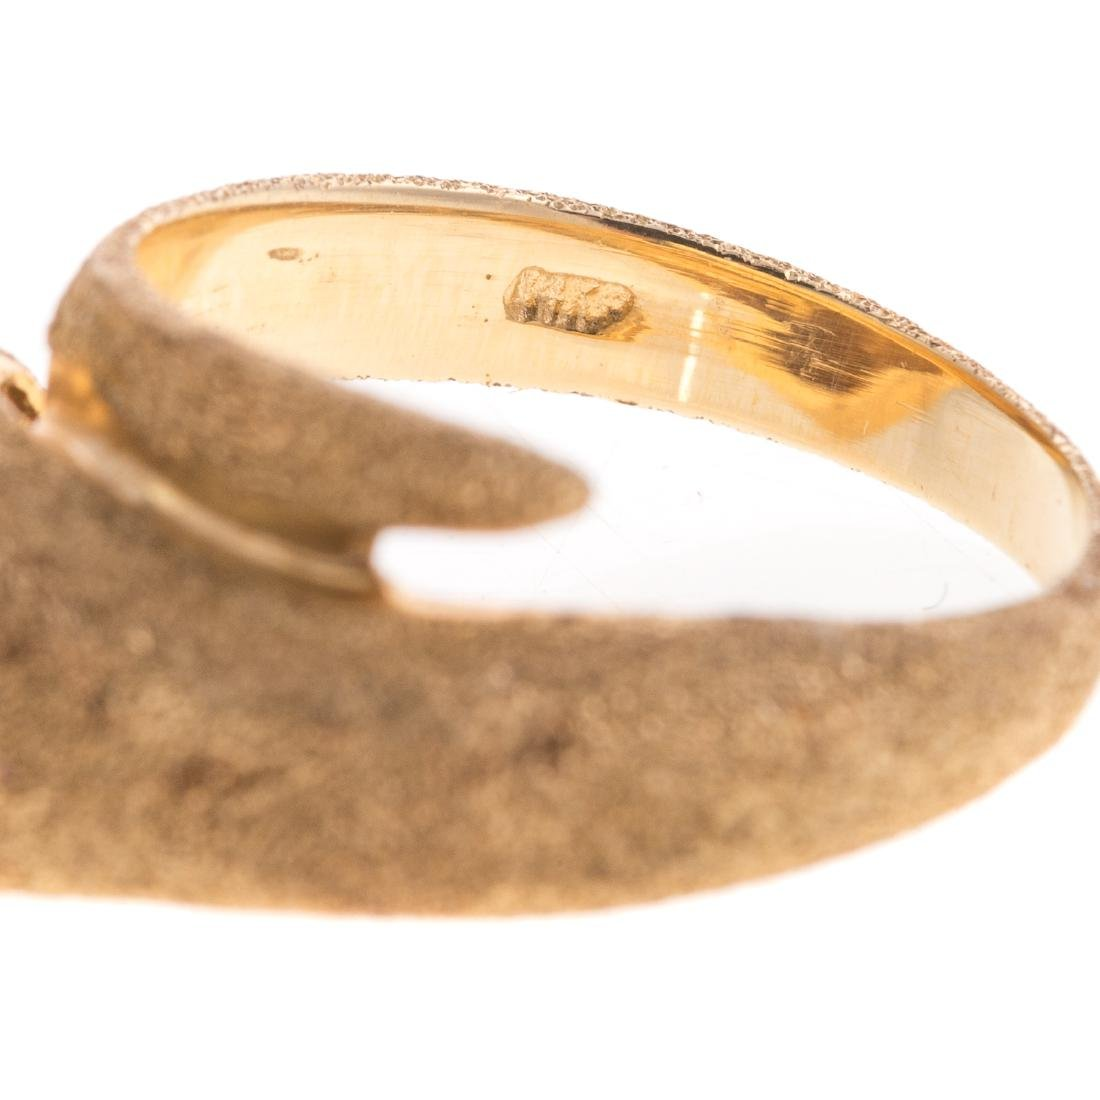 A Lady's 14K Panther Ring with Diamond Eyes - 4